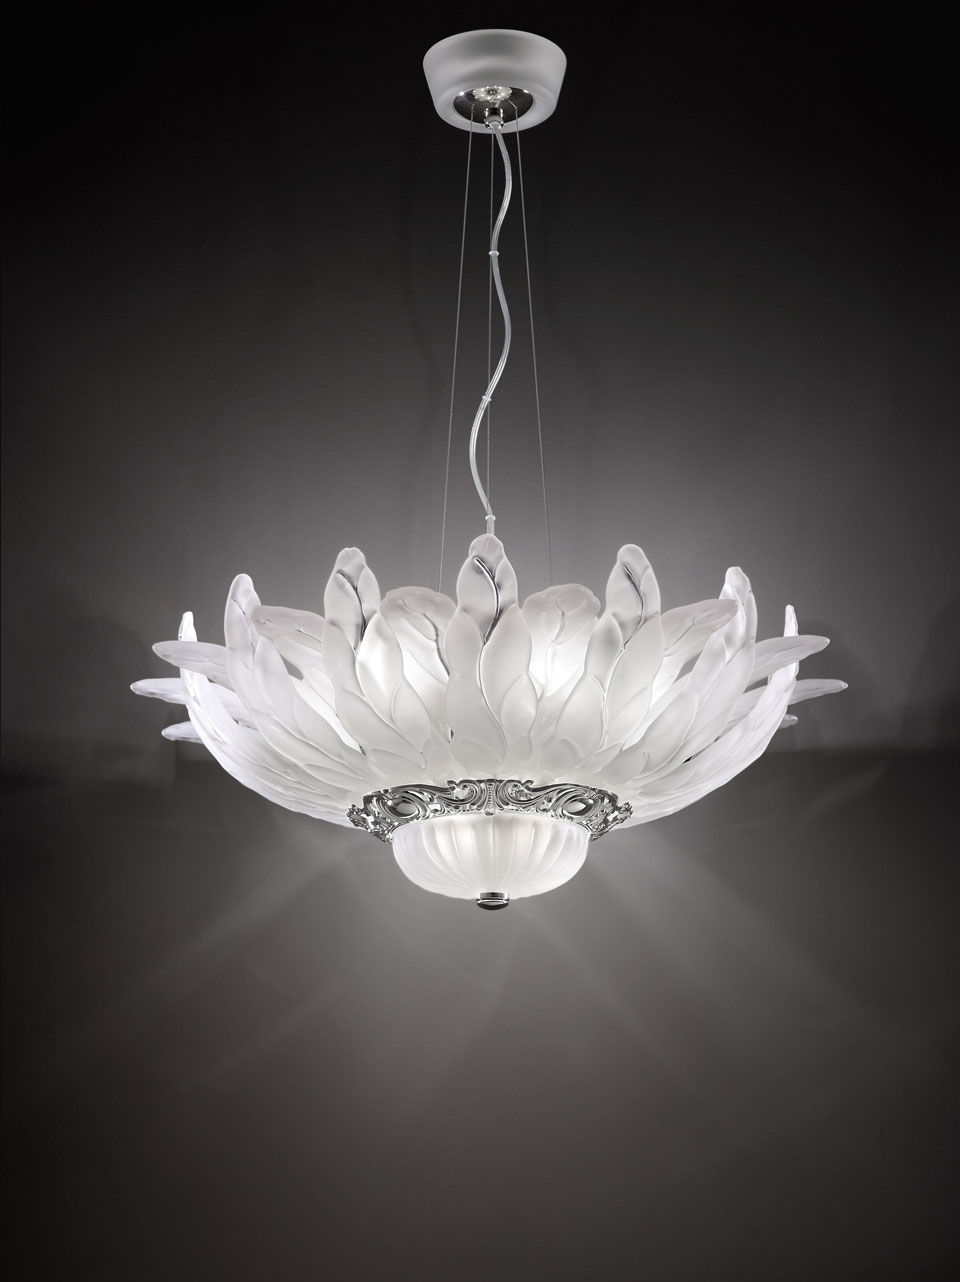 Chandelier in satin white glass leaves and polished nickel crown. Italamp.